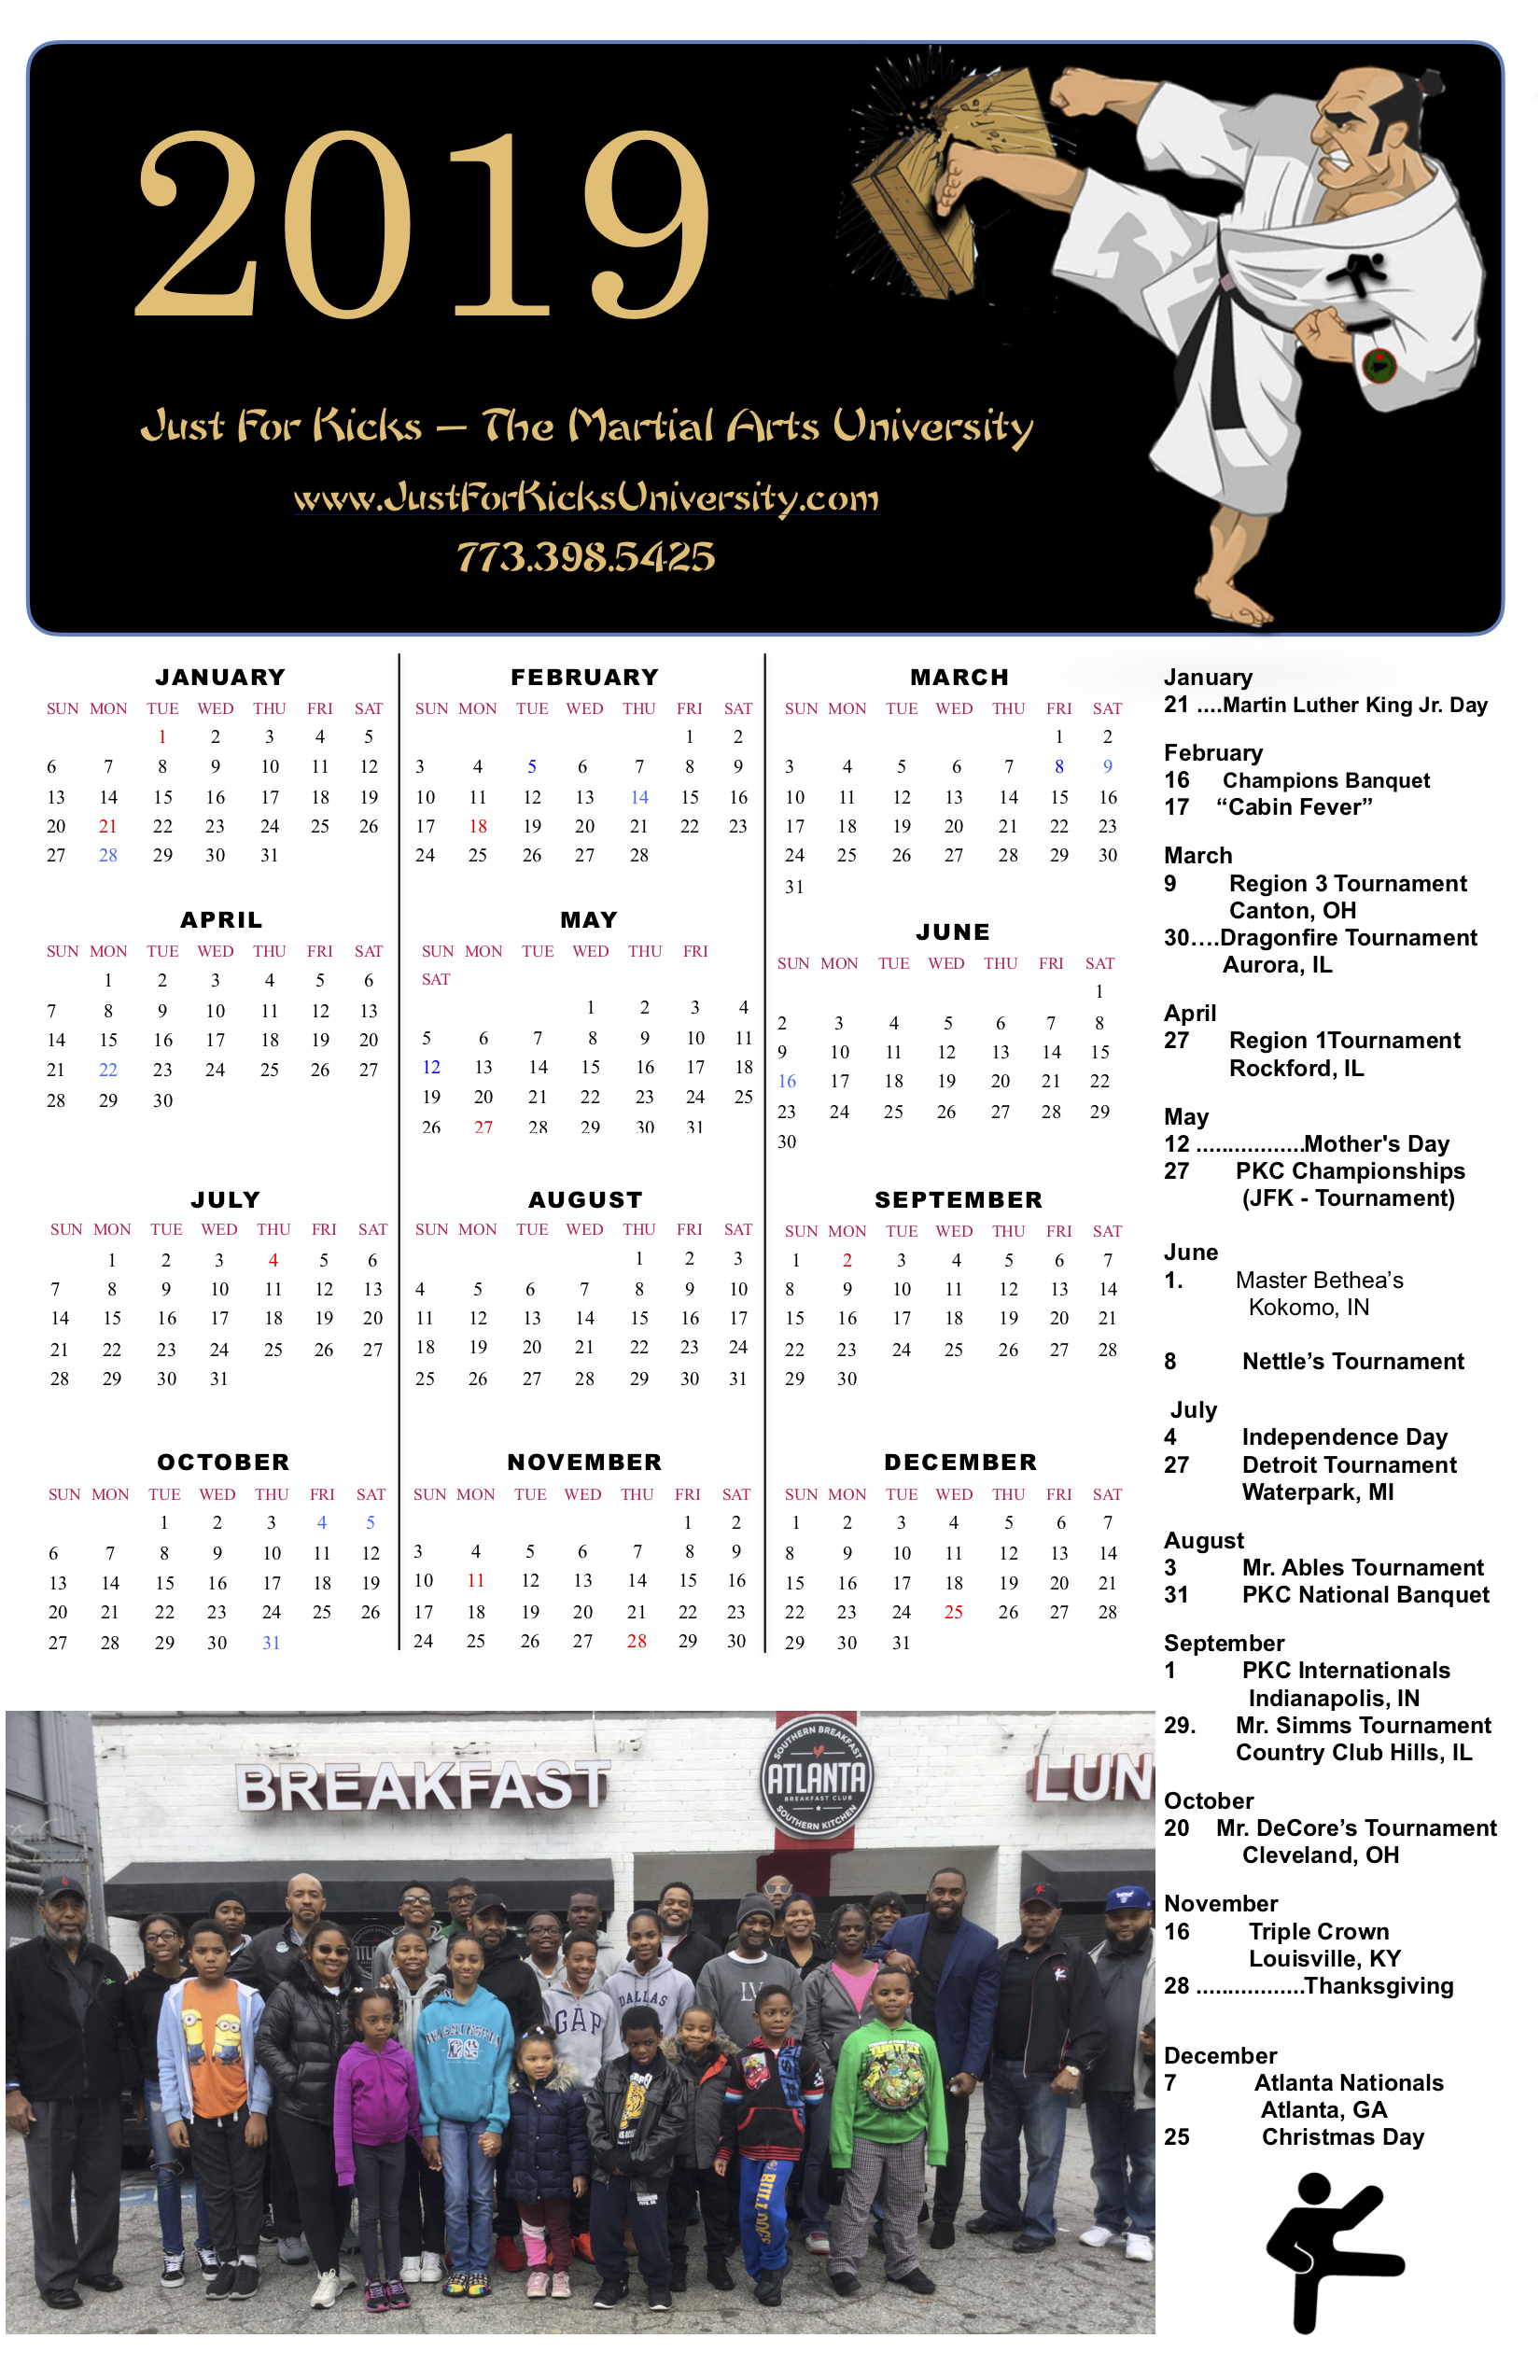 2019_School_Calender - At a Glance